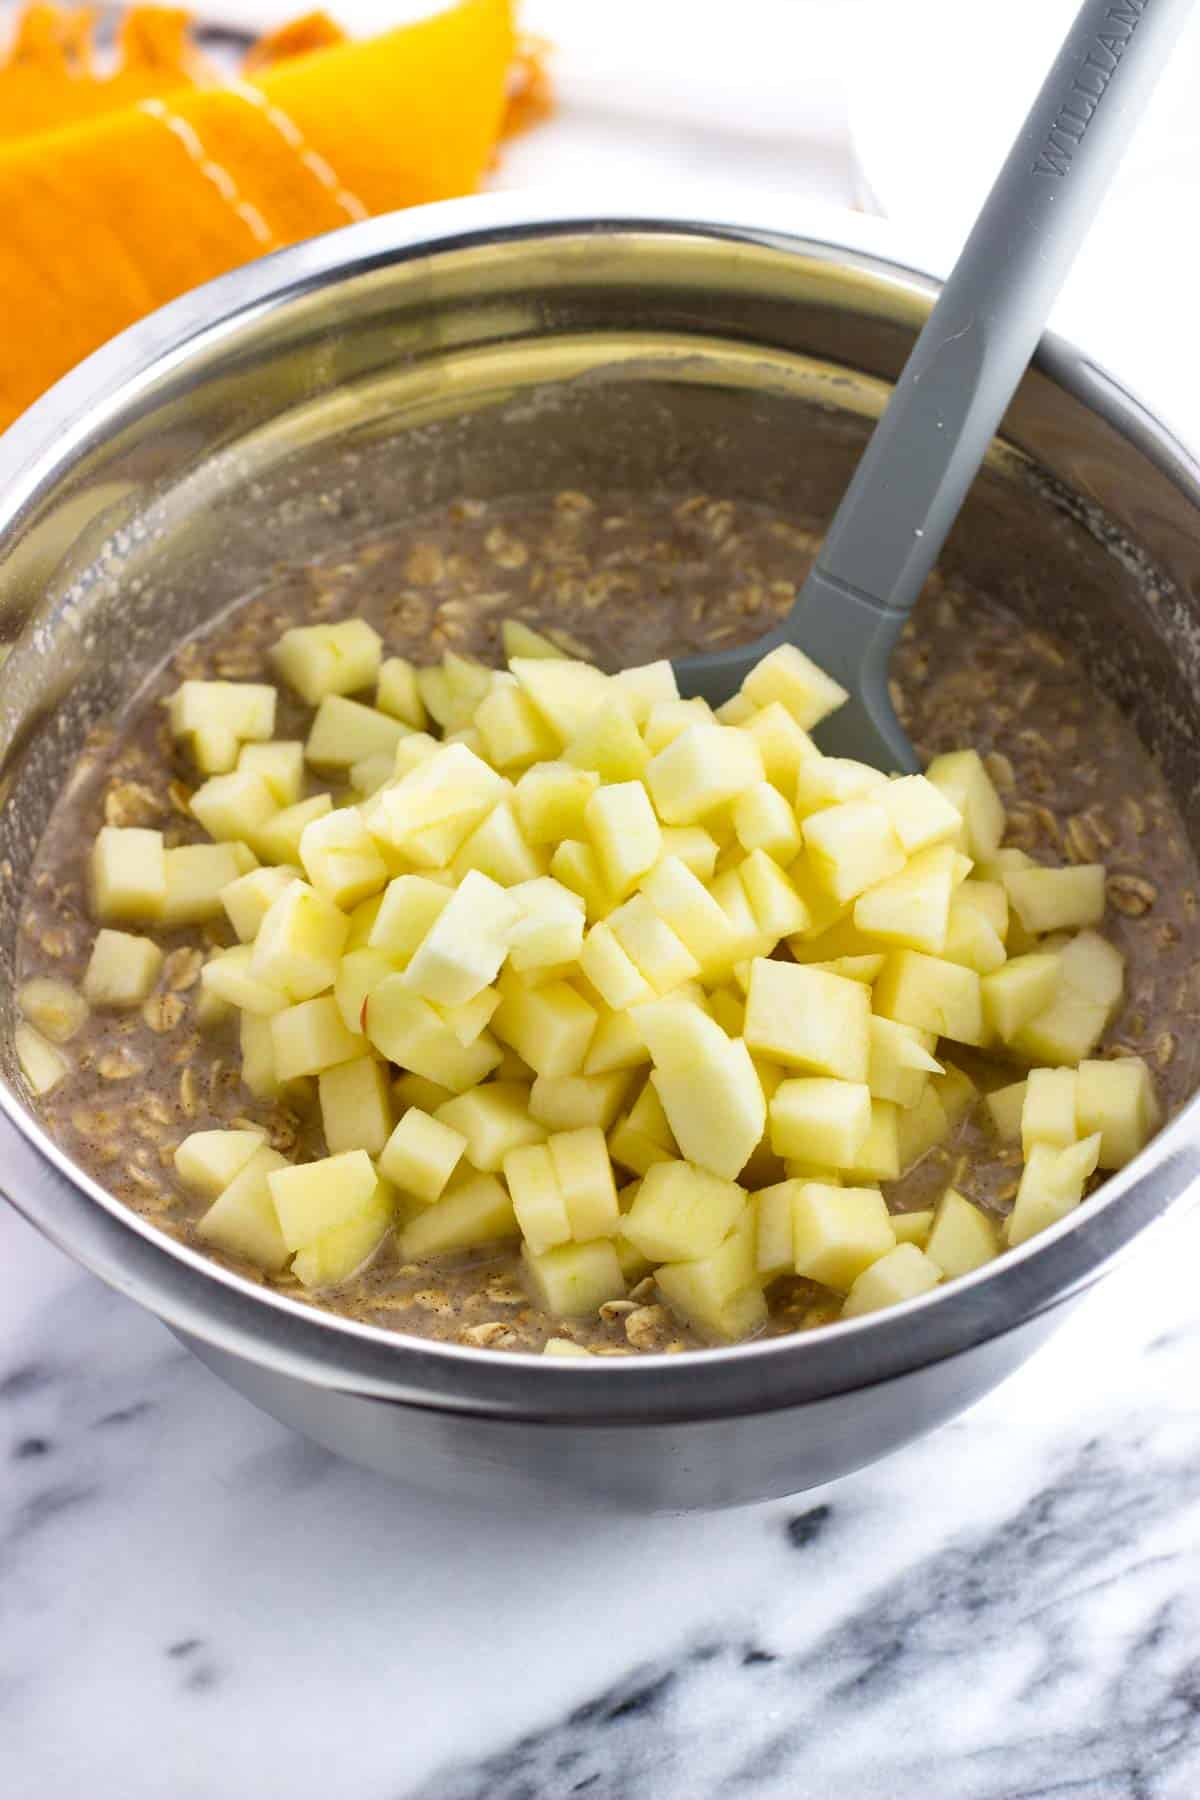 Diced apples added to the bowl with the oatmeal mixture.